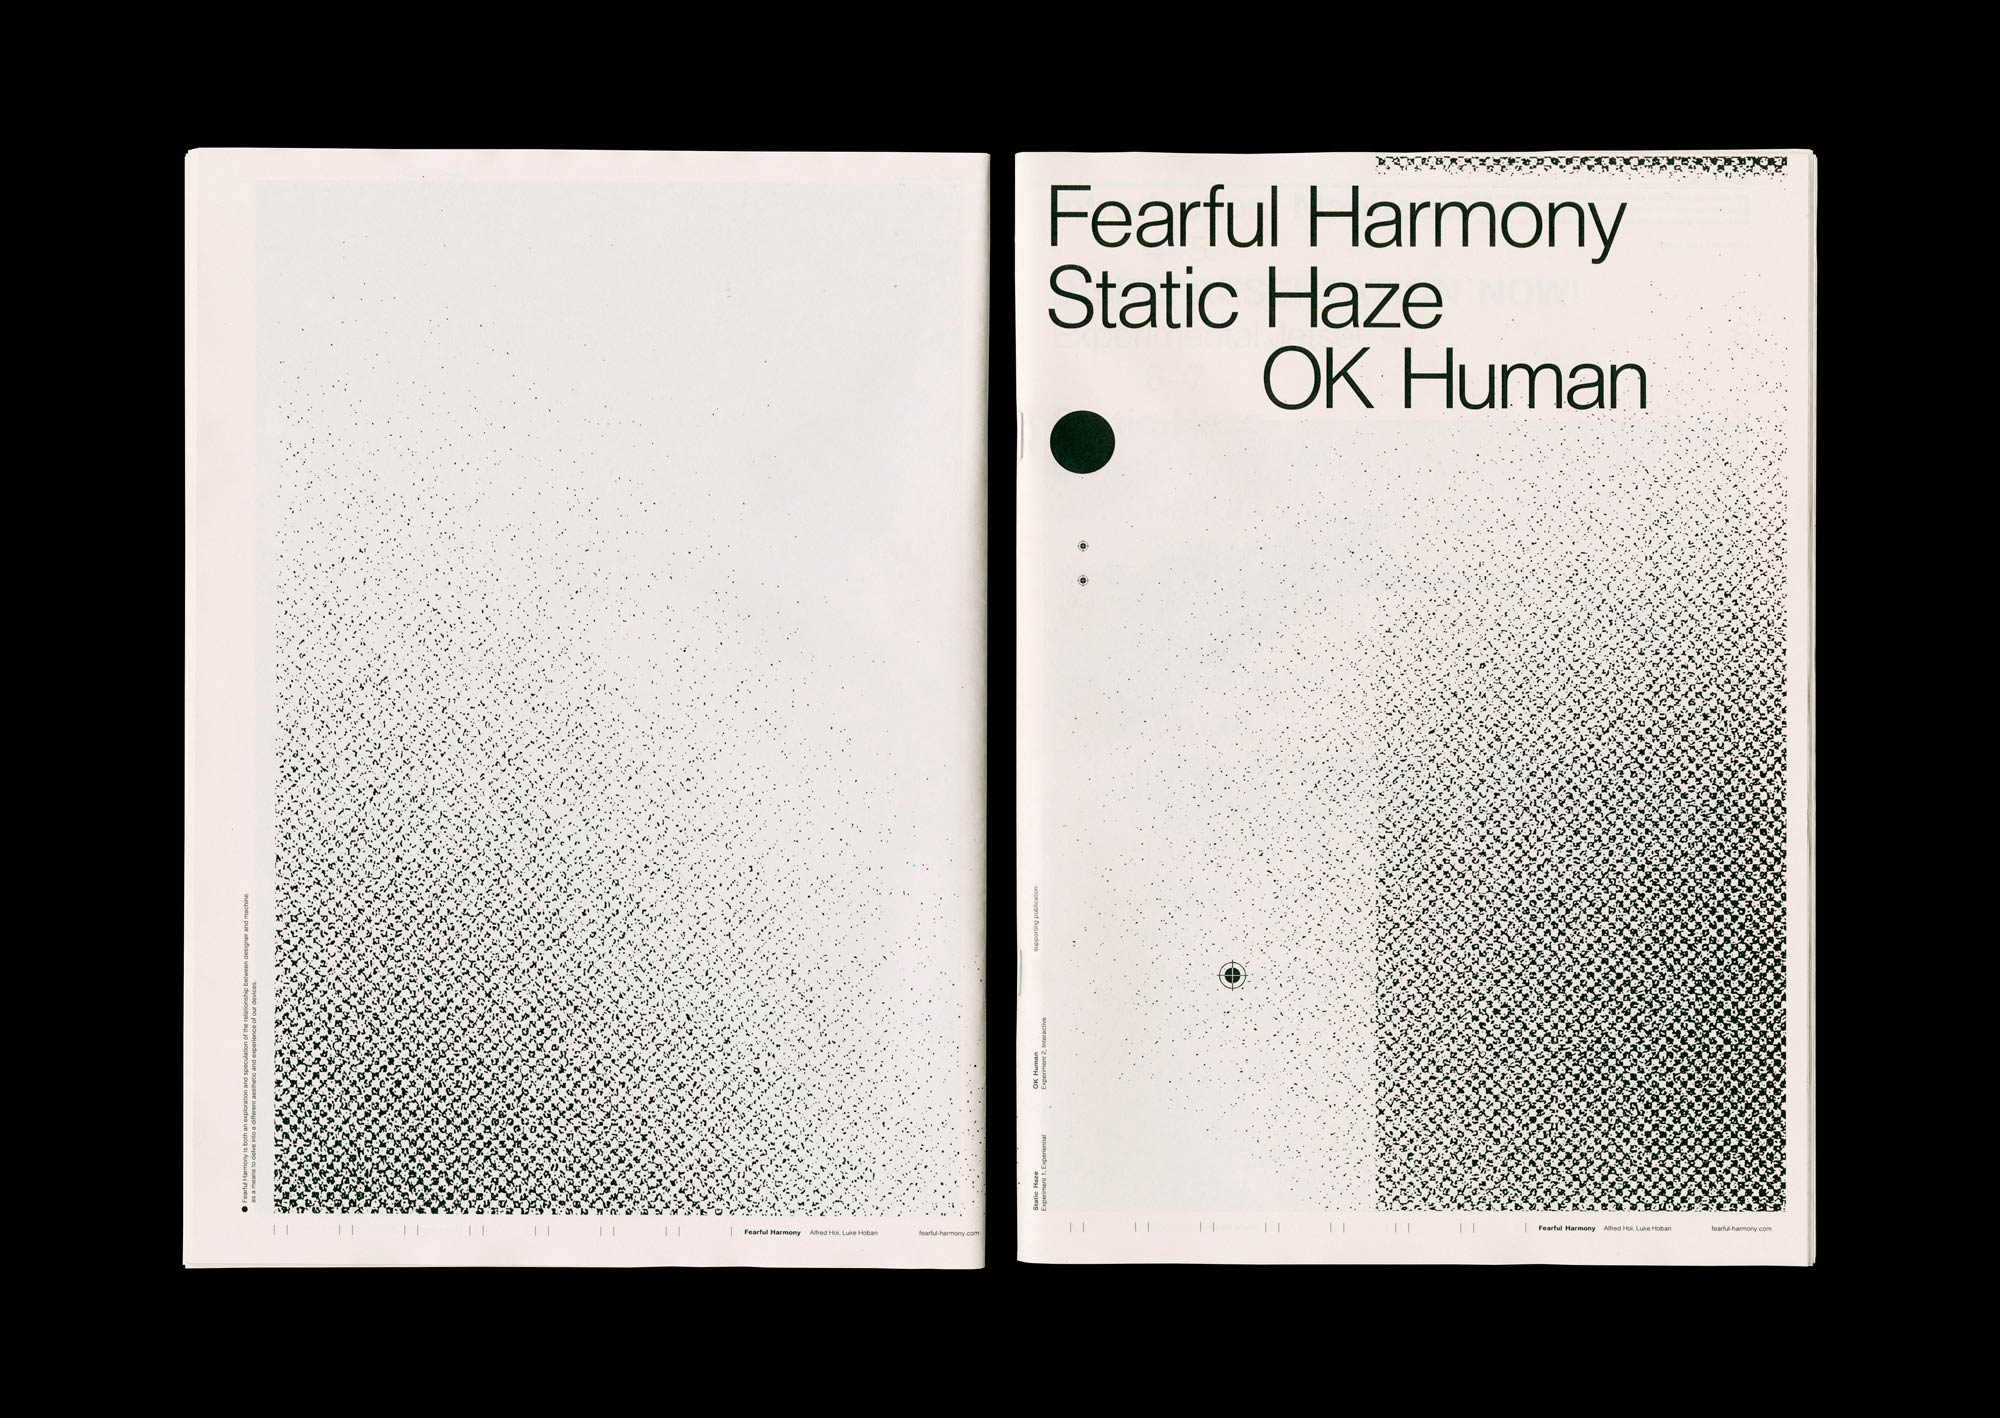 Spread from the supporting publication of Fearful Harmony. Cover and back pages